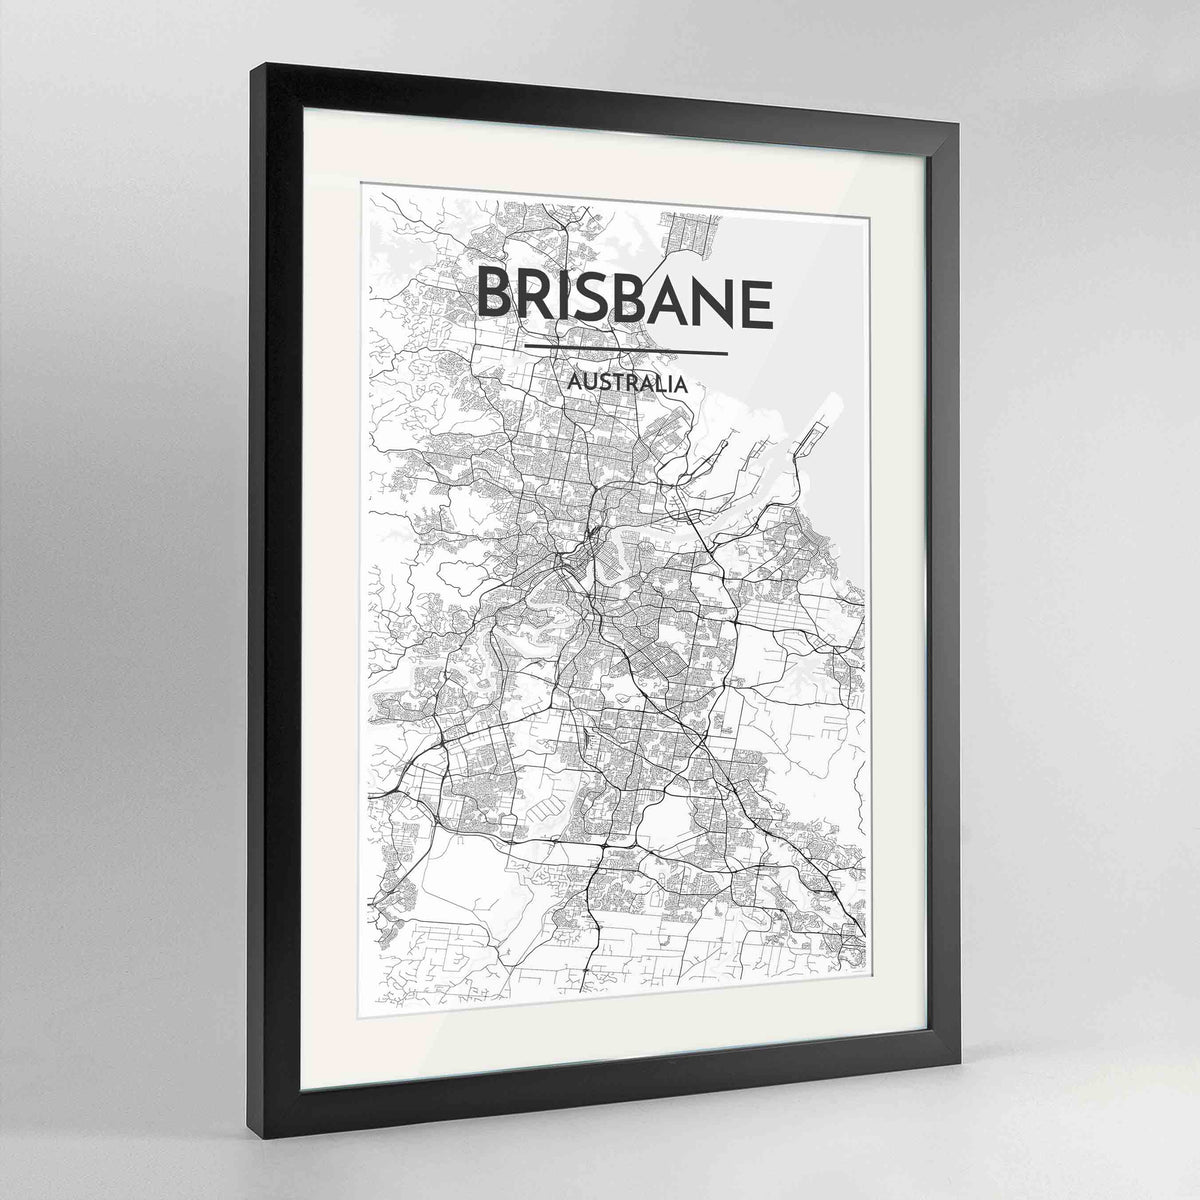 "Framed Brisbane Map Art Print 24x36"" Contemporary Black frame Point Two Design Group"